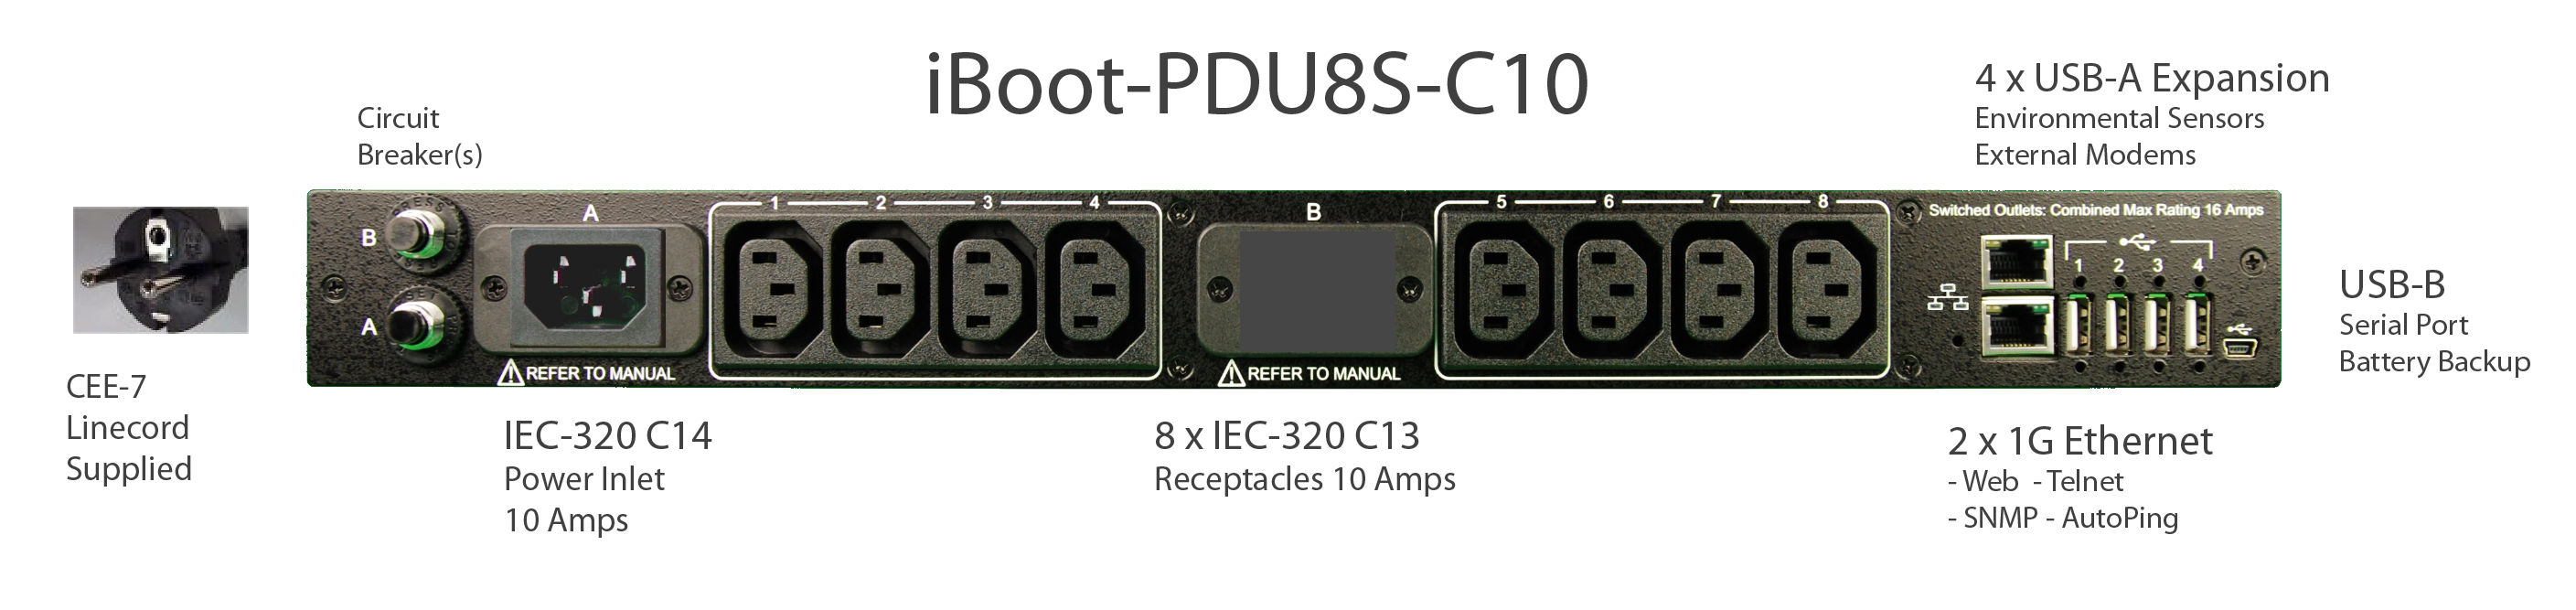 iBoot-PDU8S-C10 for Remote Reboot, 1 x IEC C14 .